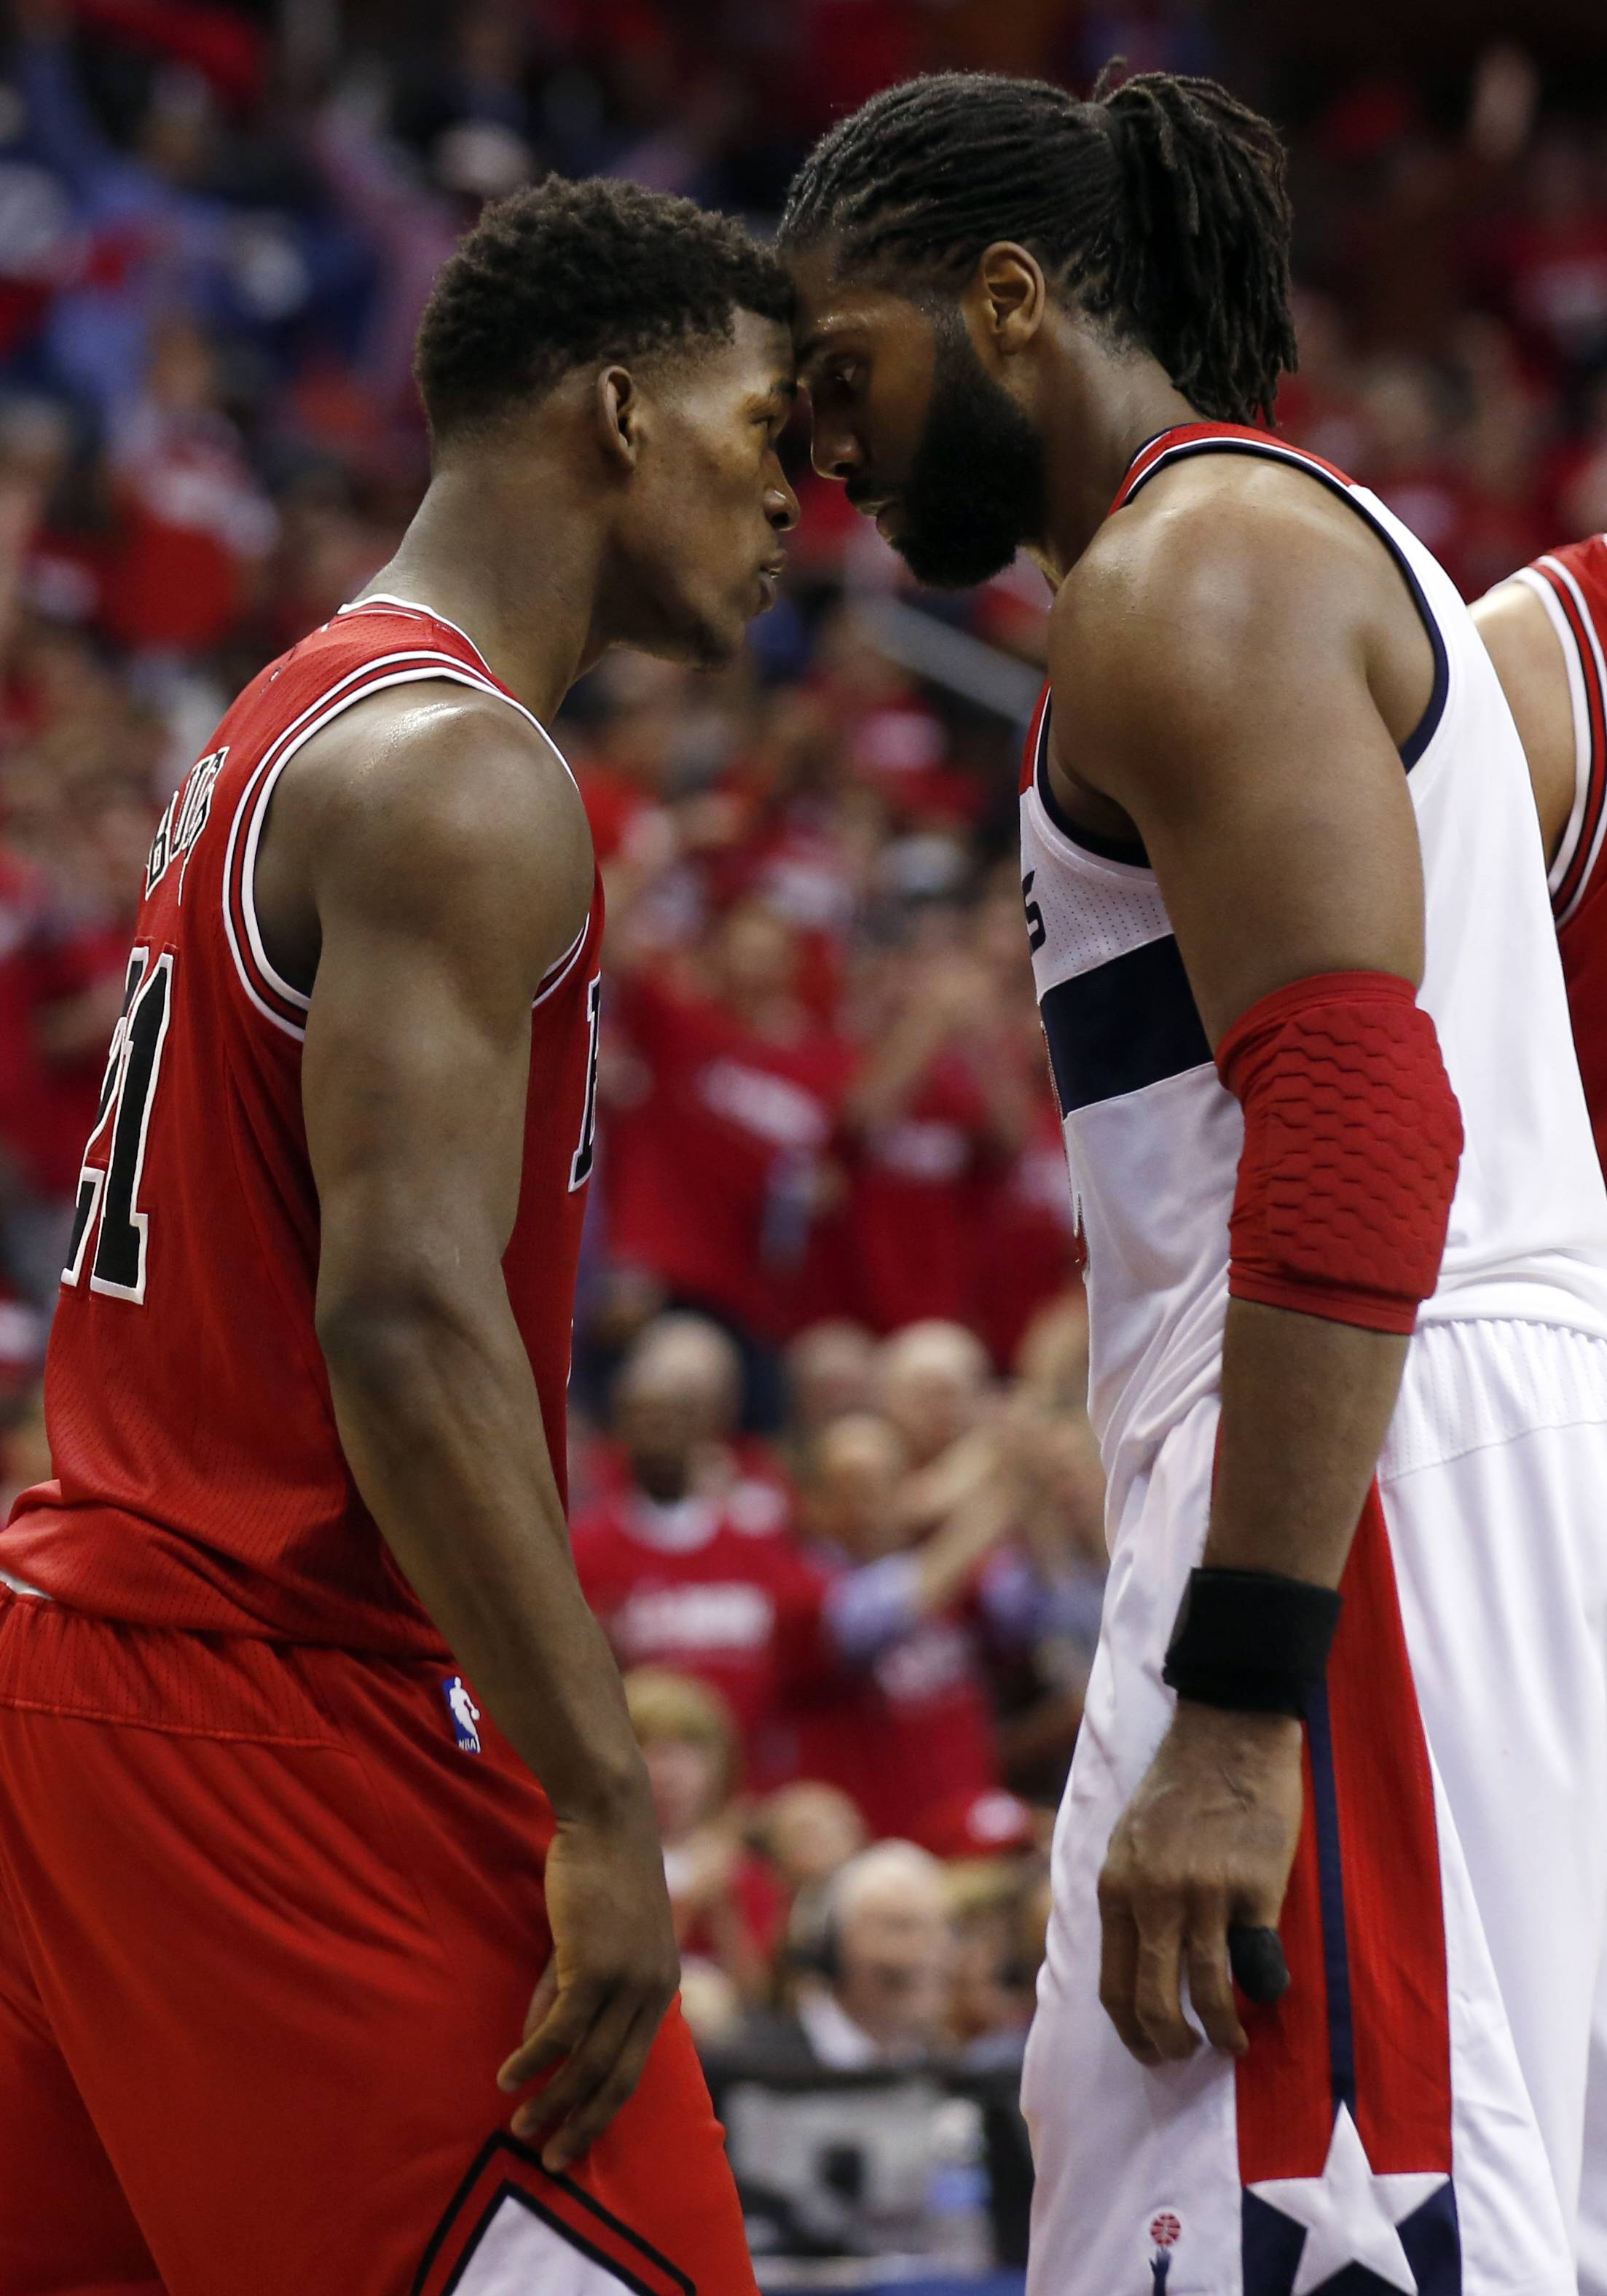 Bulls guard Jimmy Butler and Wizards forward Nene stand head to head in the fourth quarter Friday night. Nene received a double technical and was ejected.